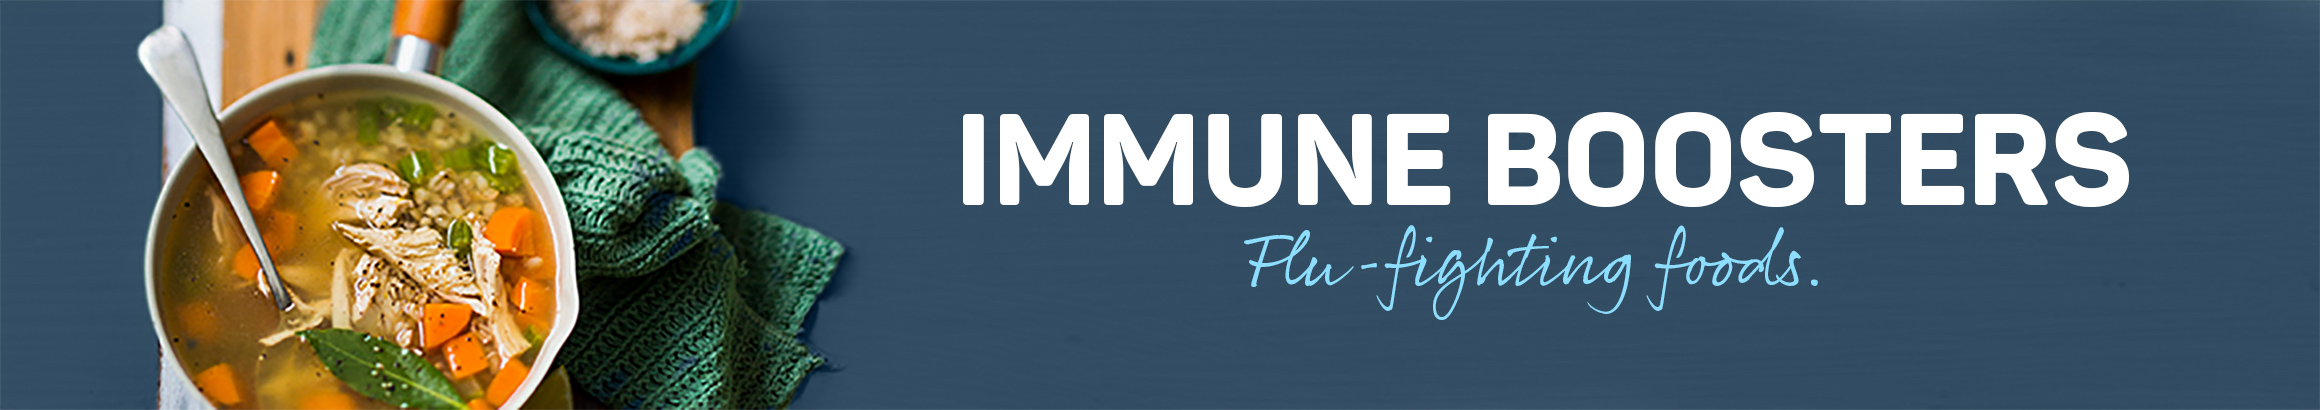 Immune boosters - Fly-fighting foods